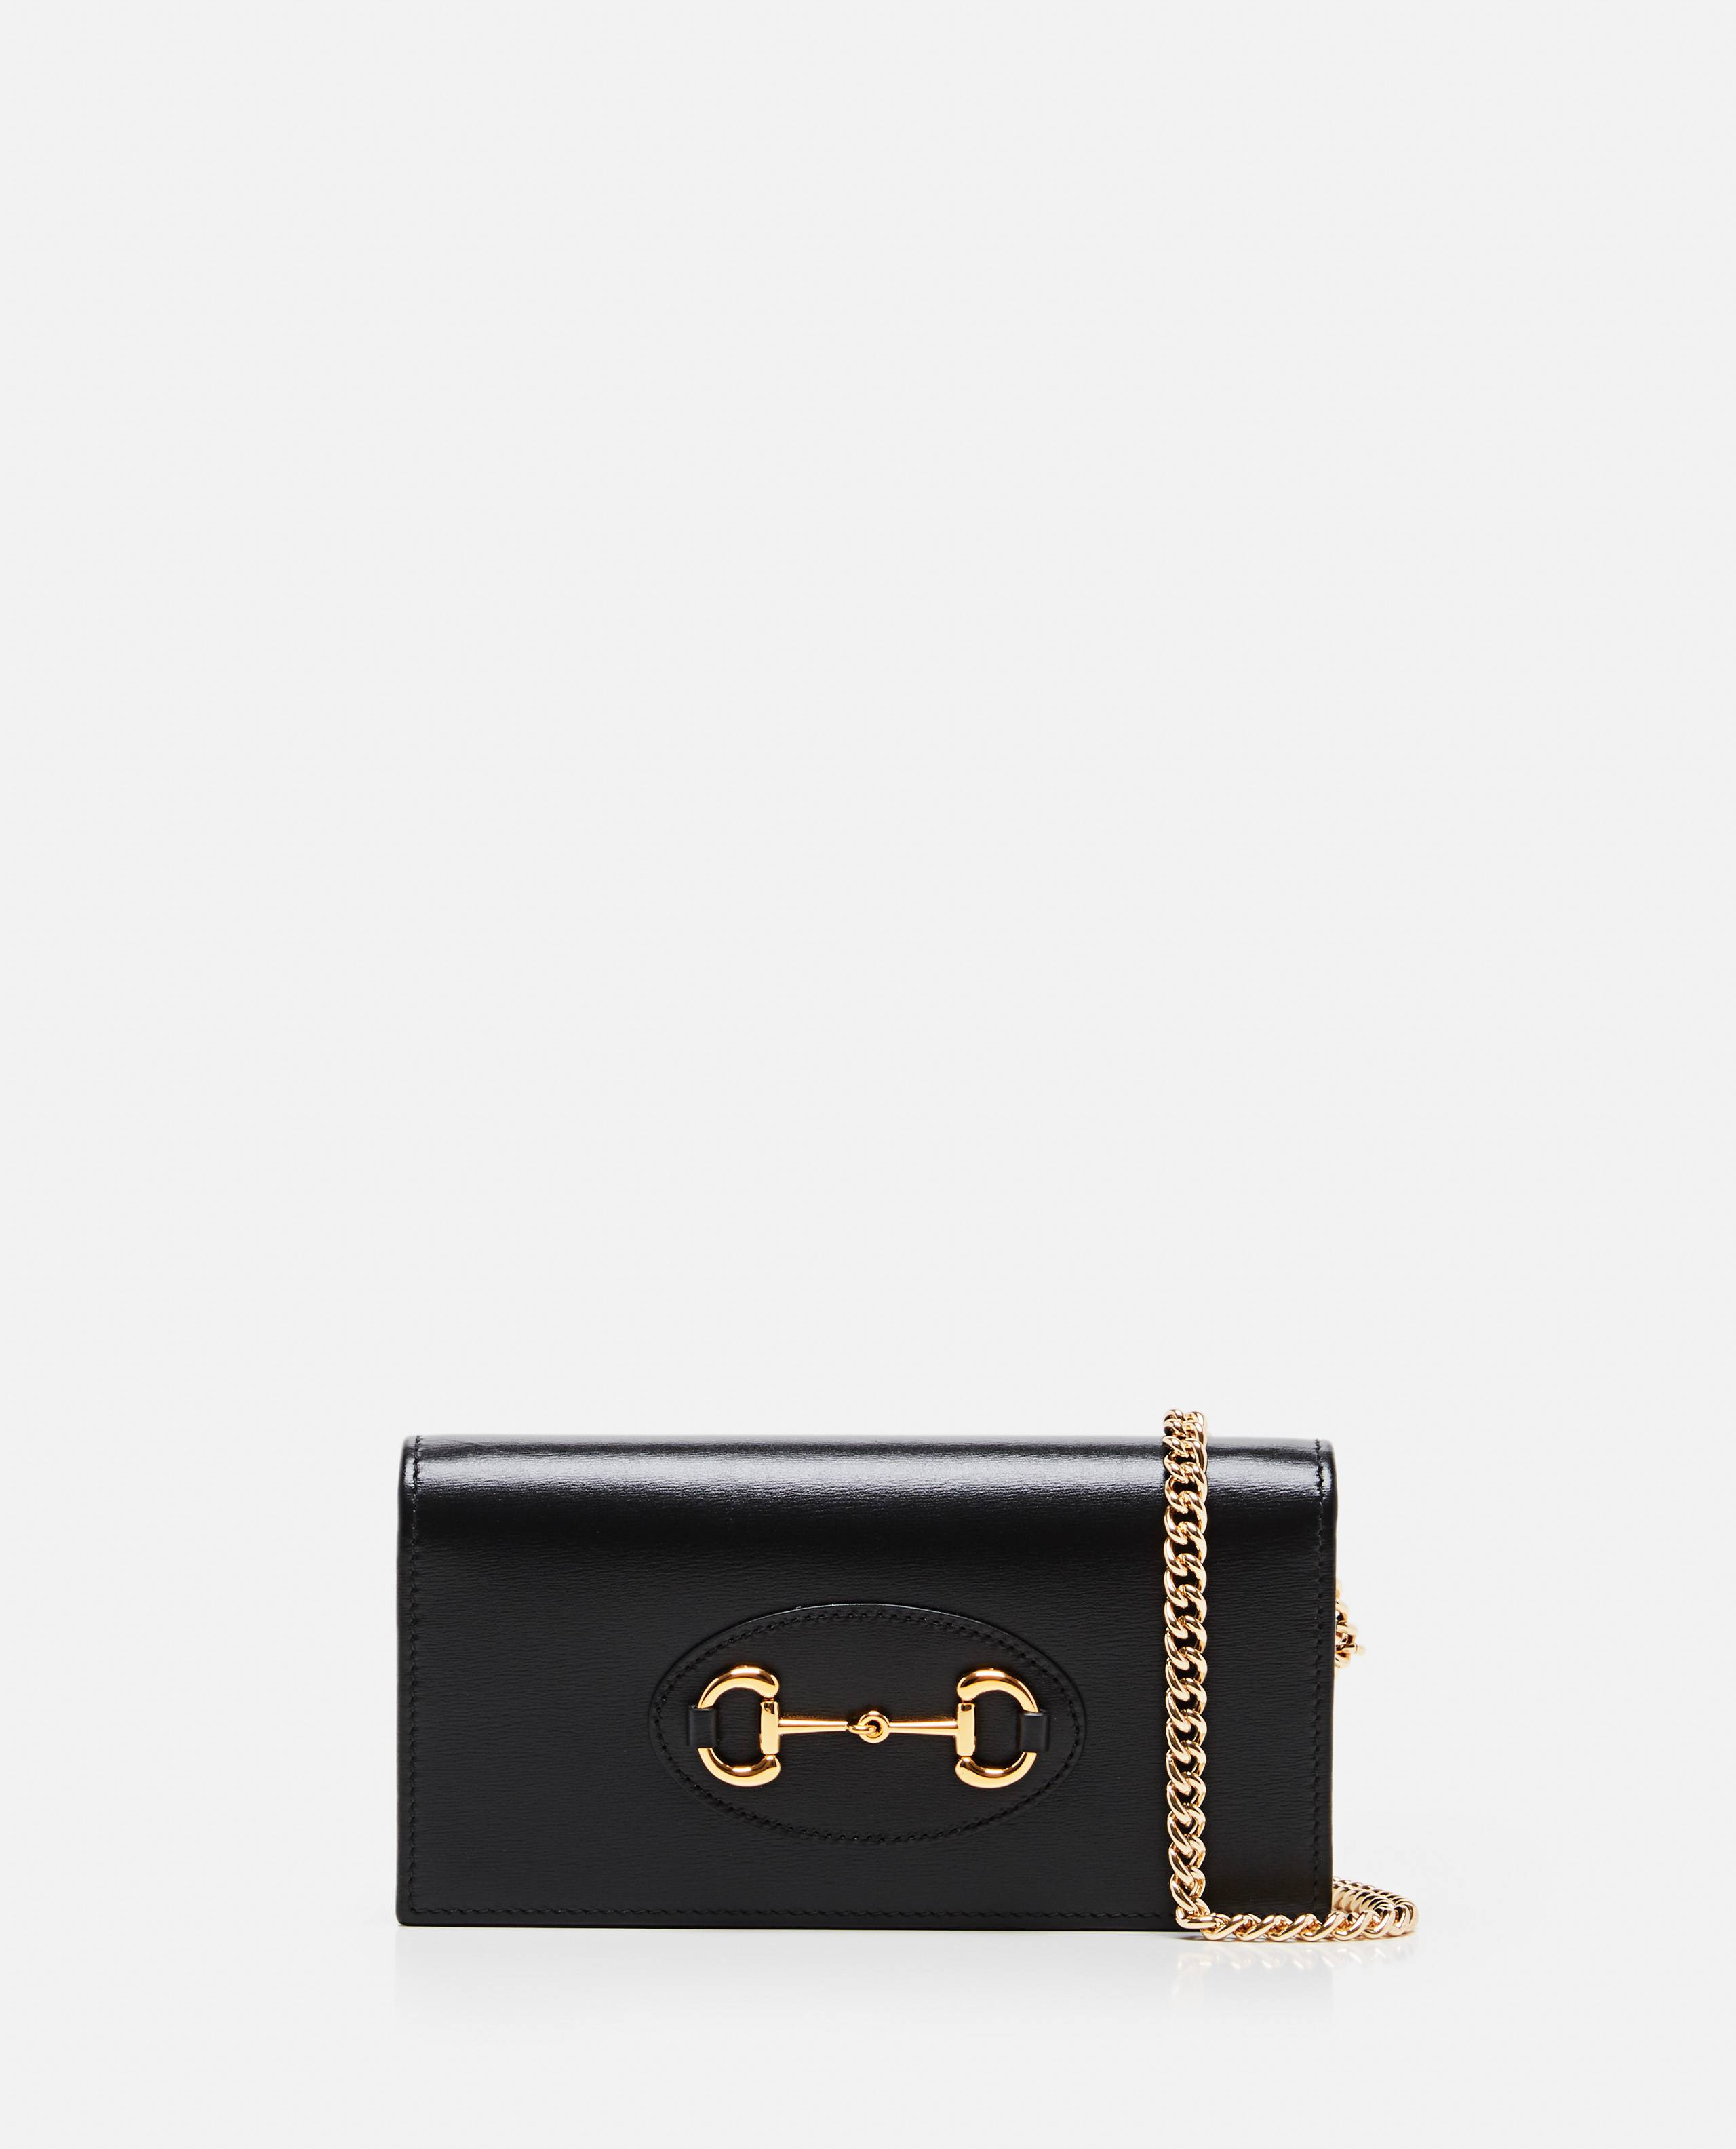 Gucci Horsebit 1955 wallet with chain - Black - female - Size: One Size